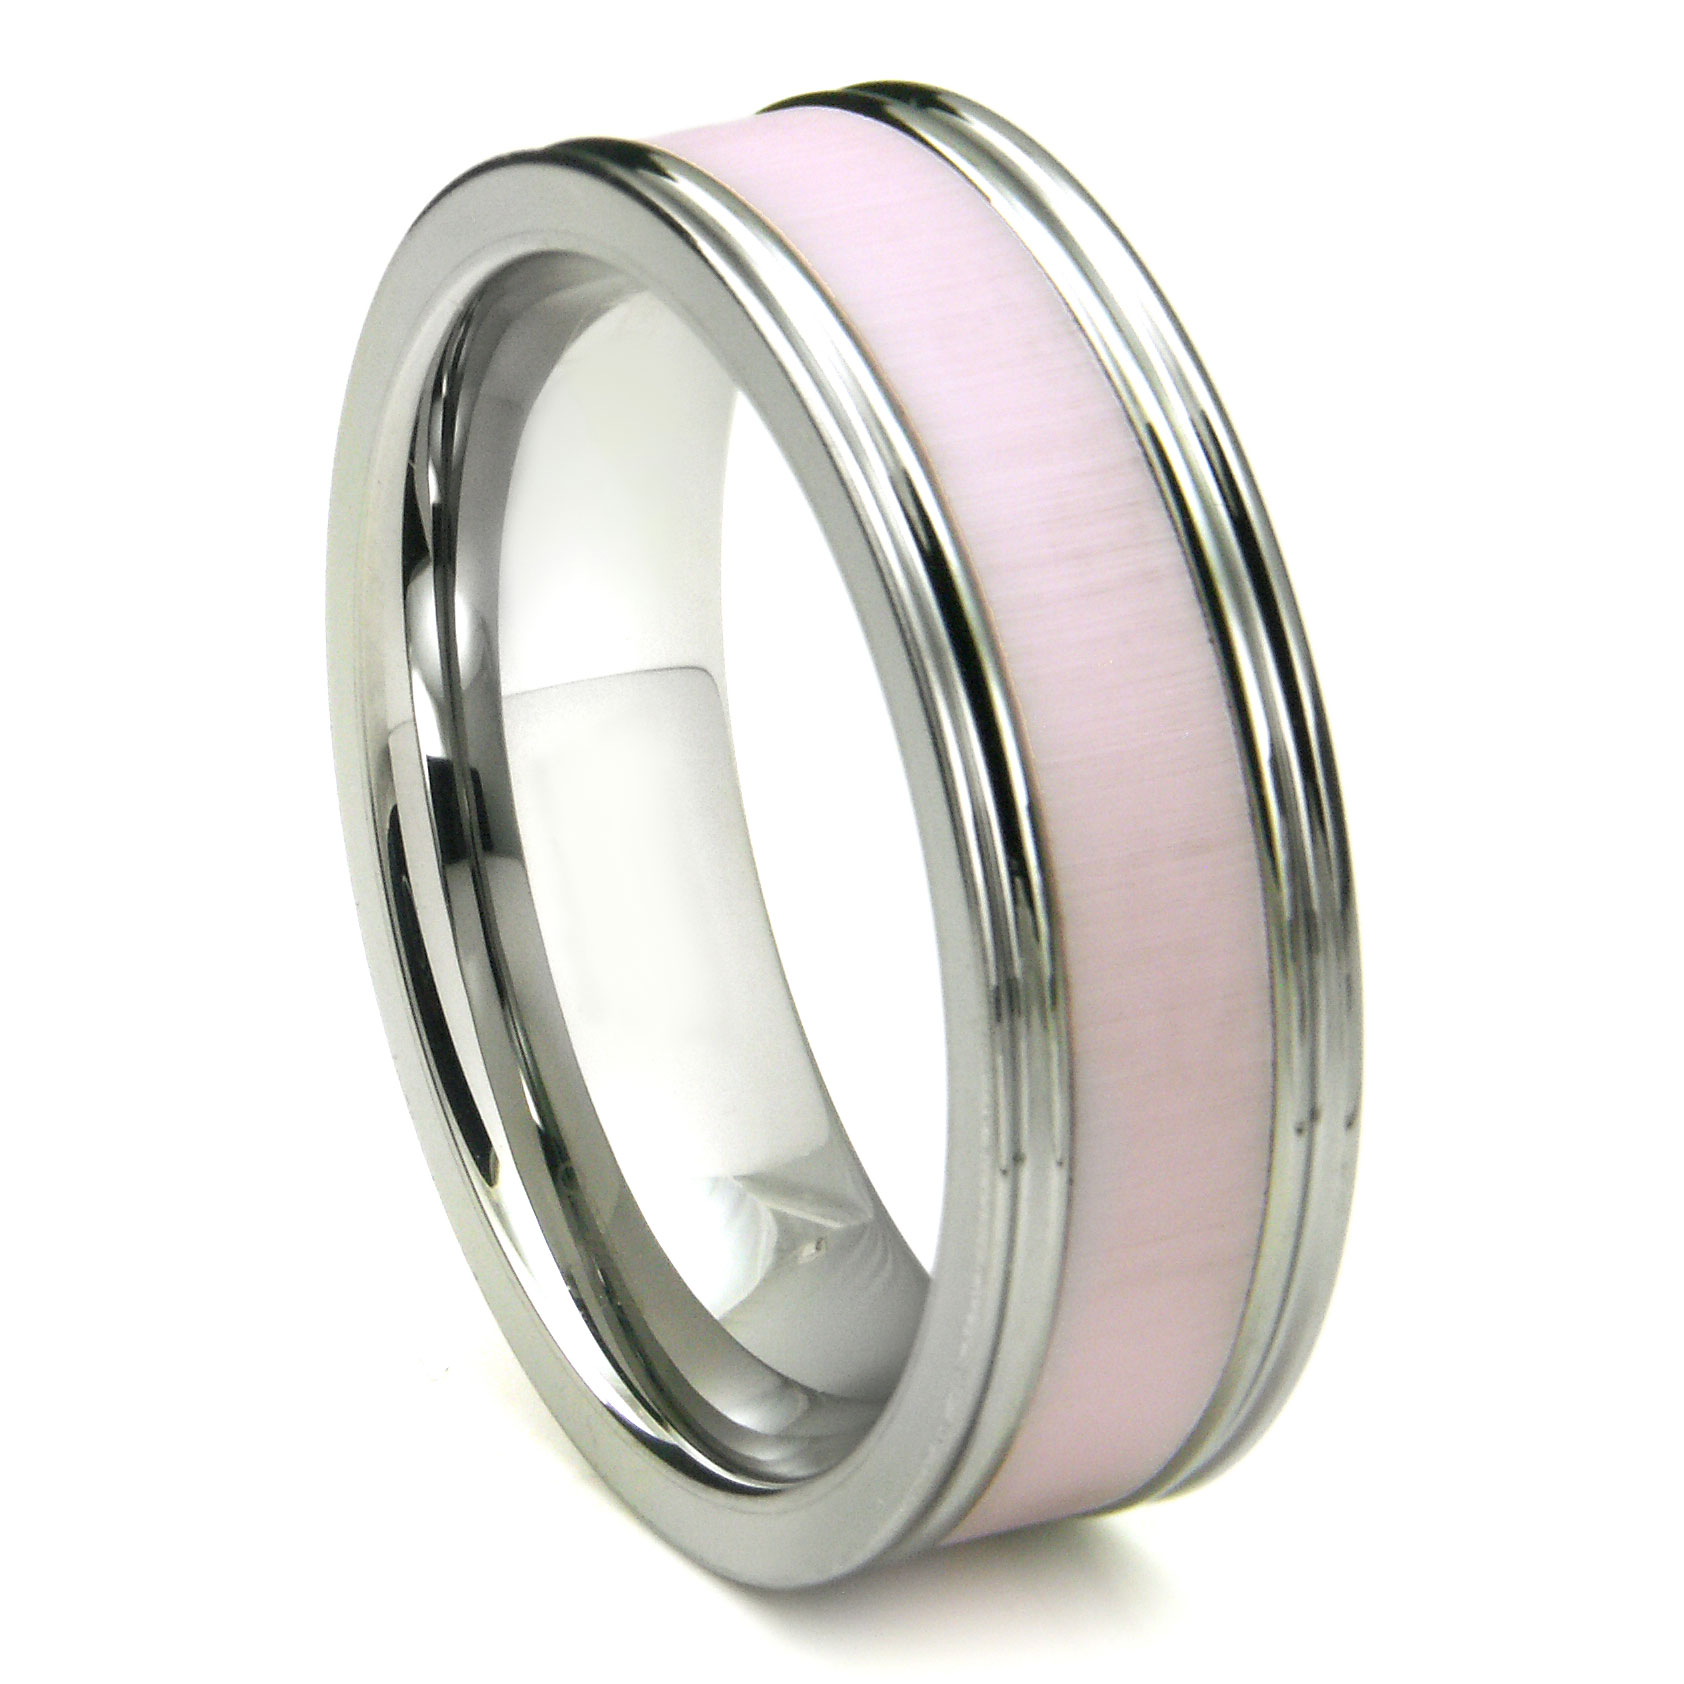 photos black wedding for elegant stock pexels pink women free ring diamond luxury and of rings